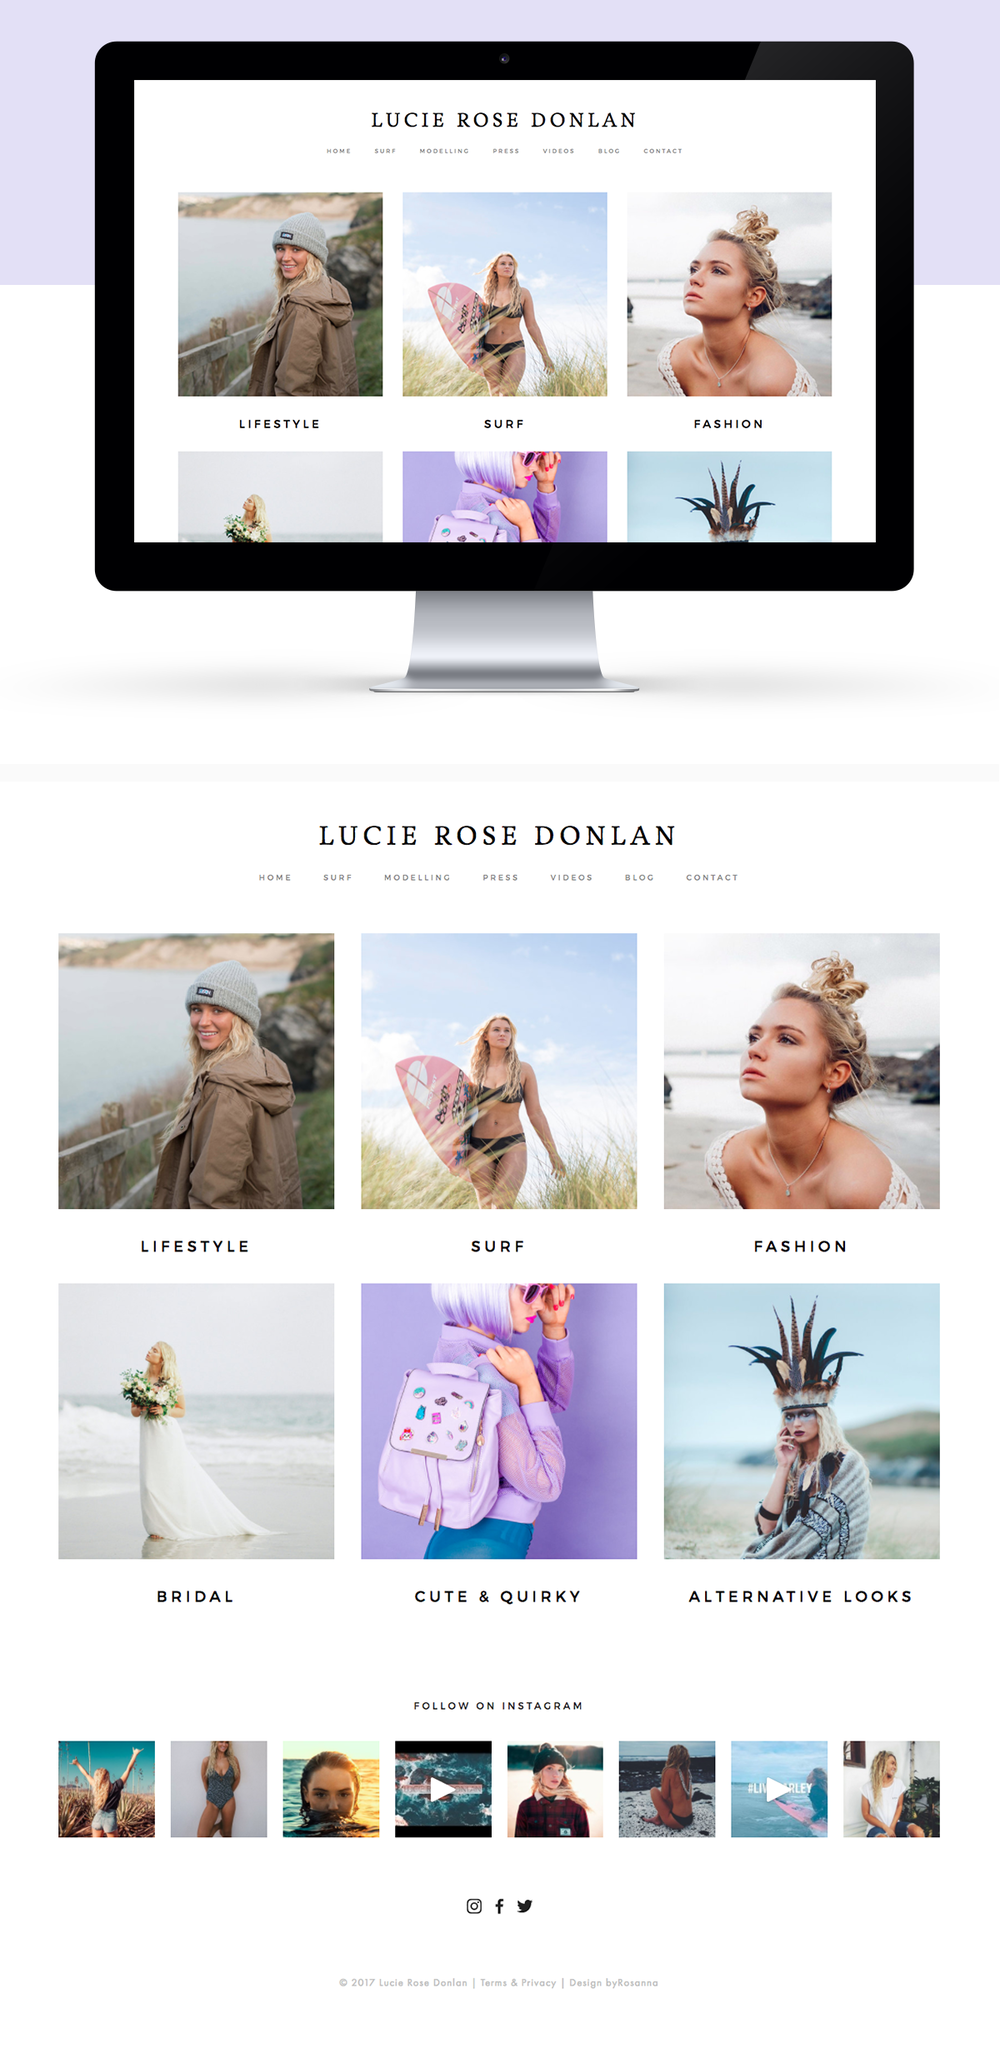 Lucie Donlan website design